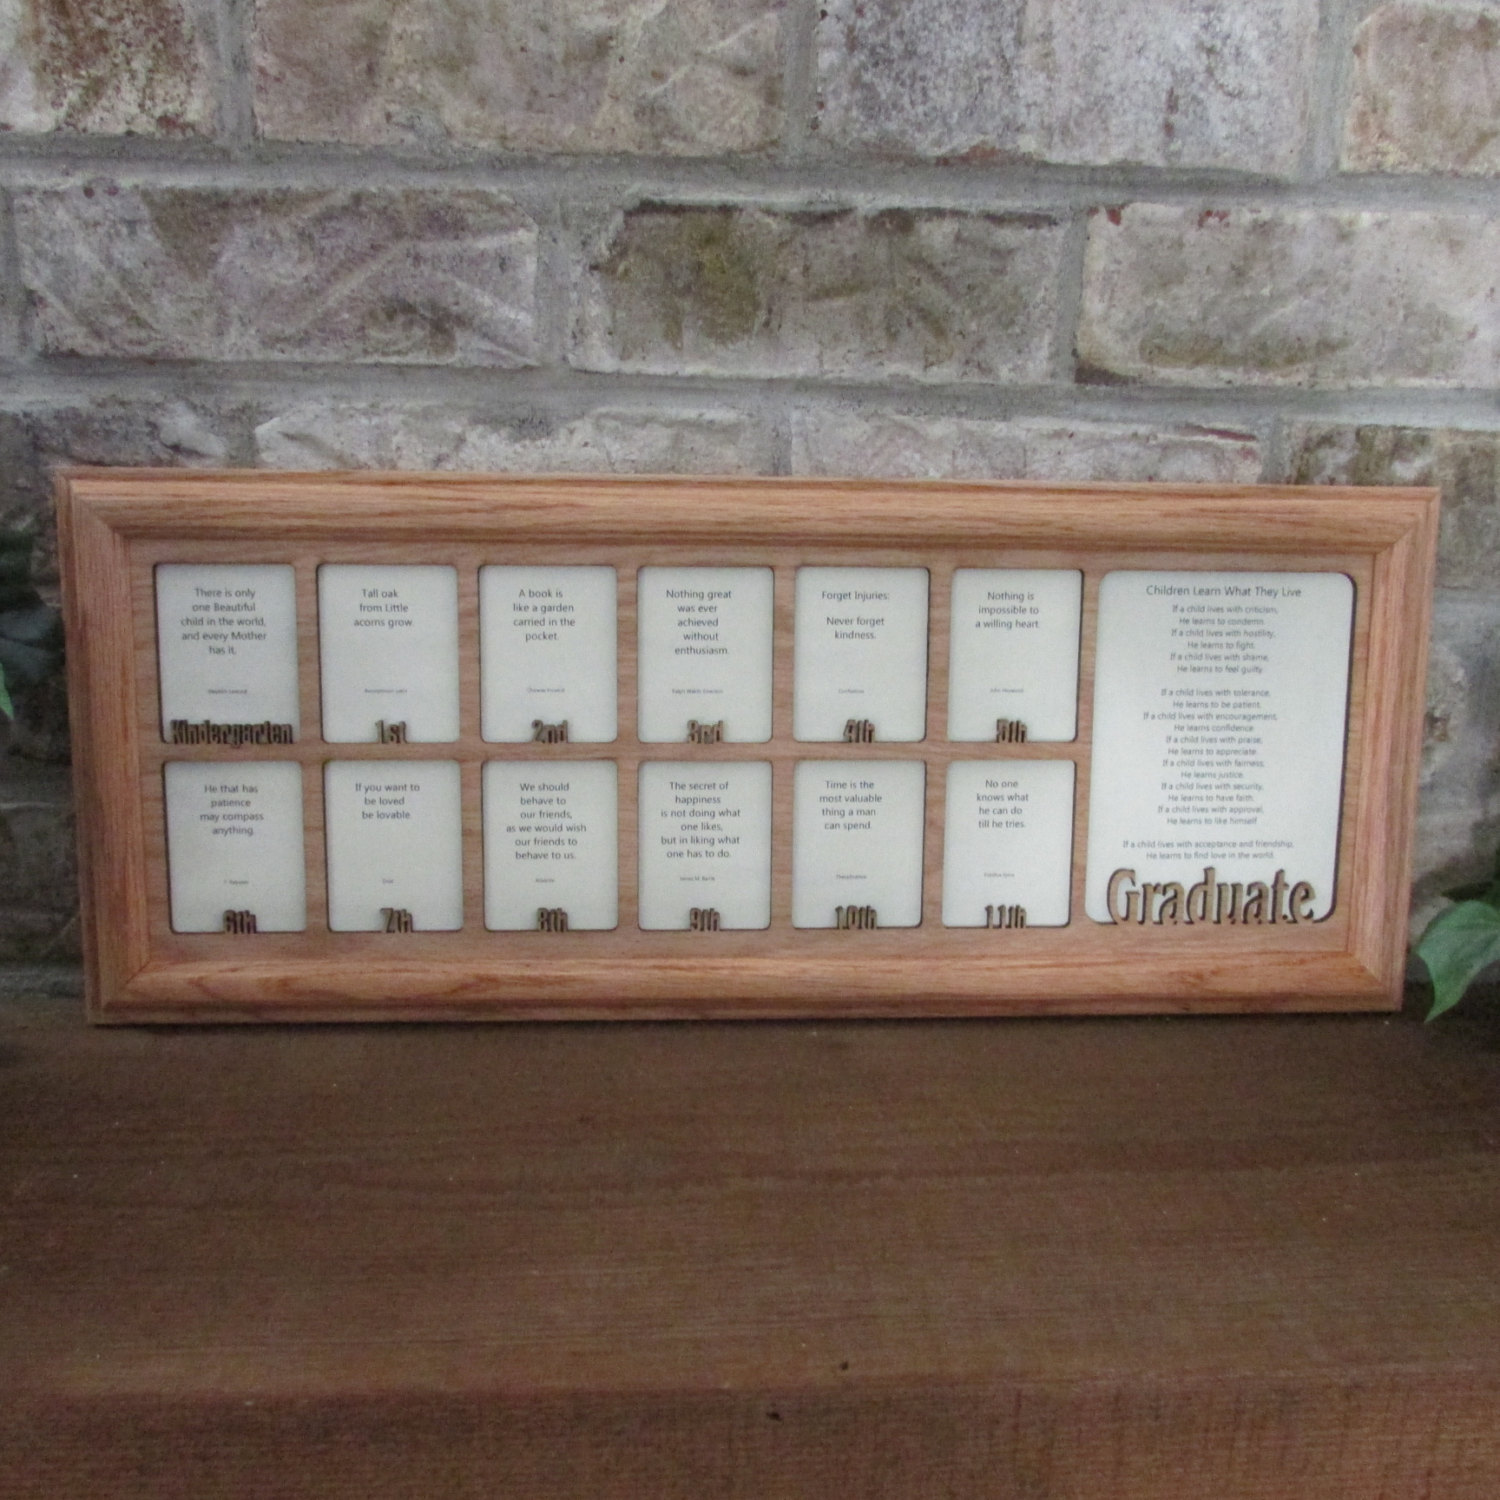 School Years Frame with Name Graduation Collage K12 Picture Frame and Matte 7x20